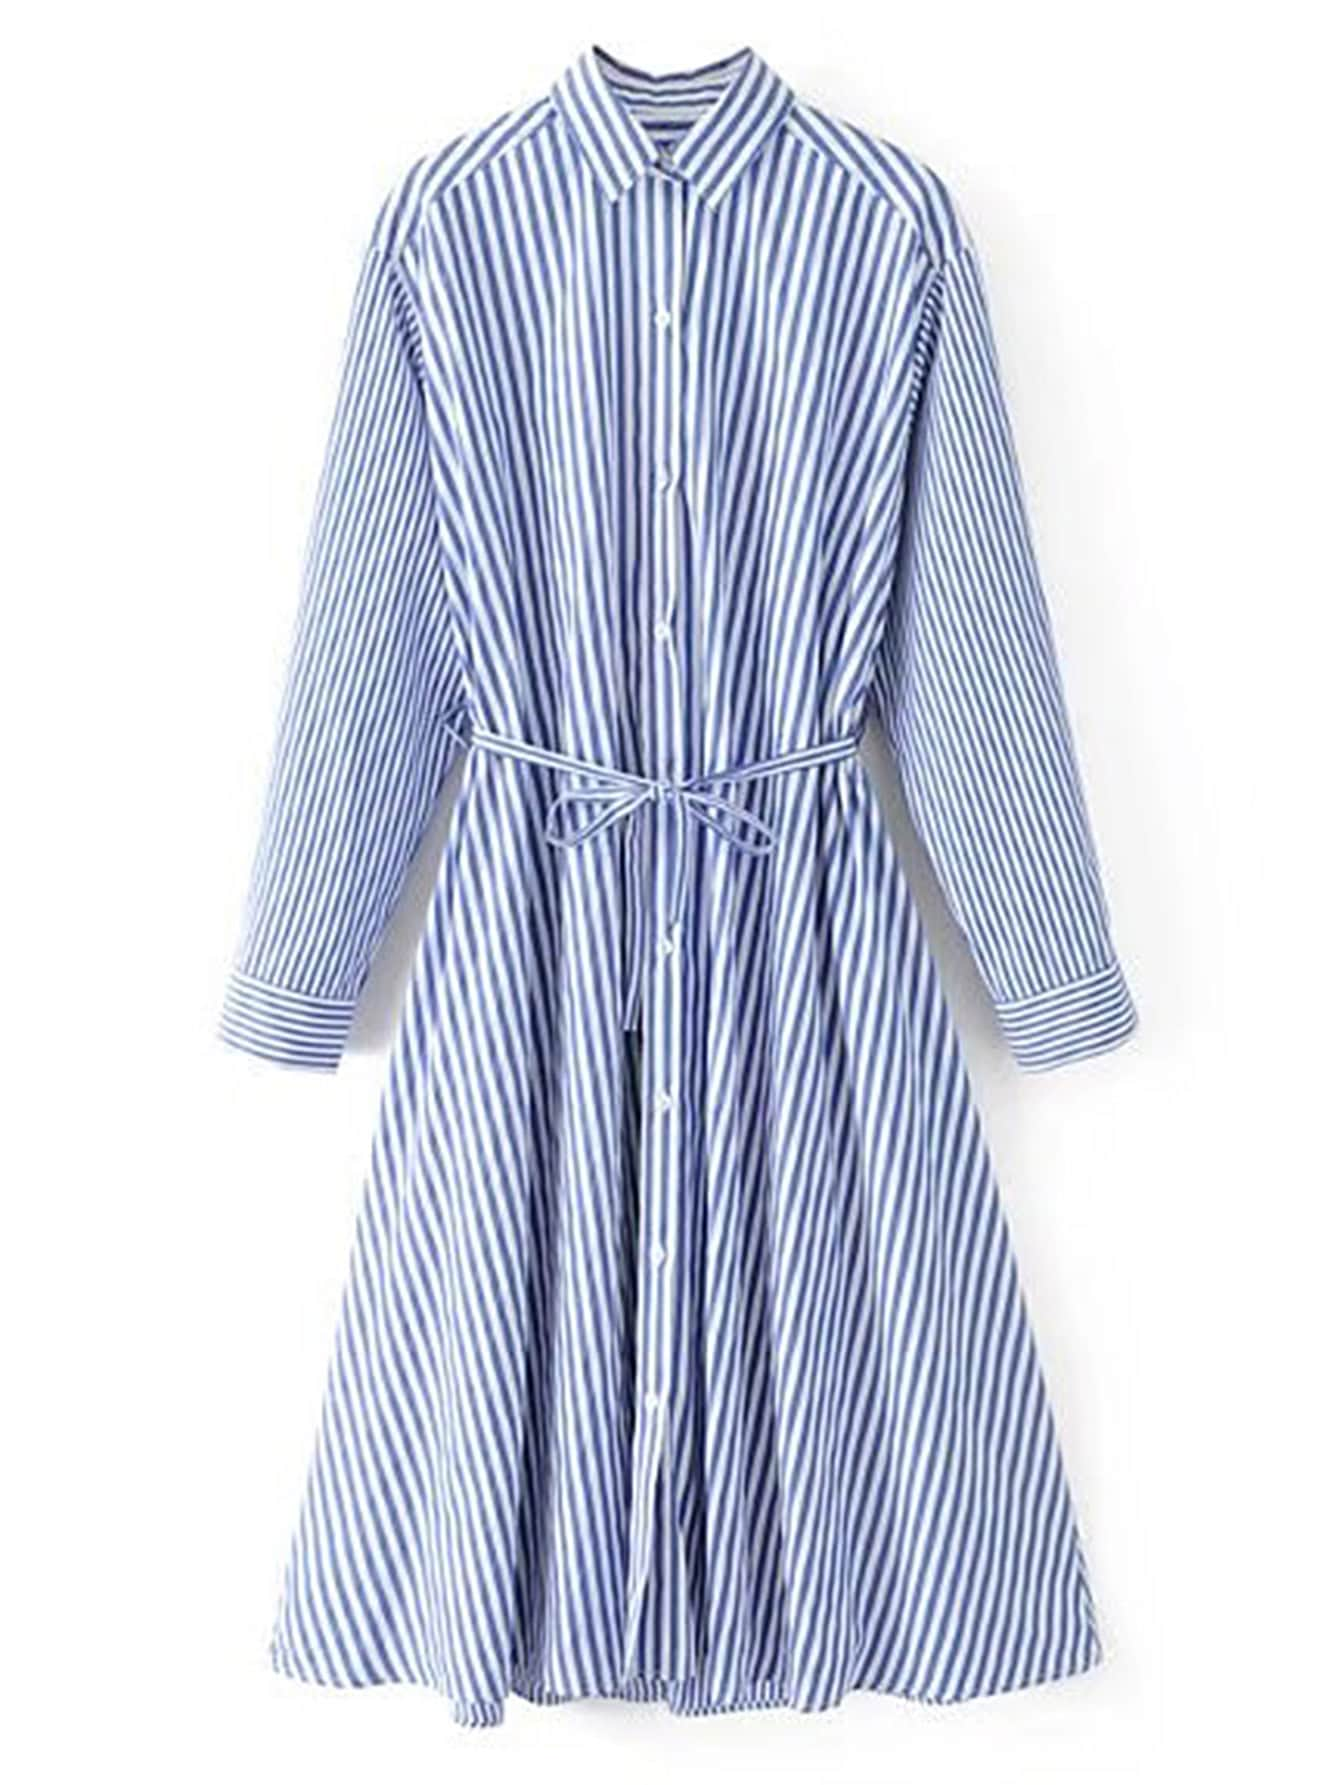 Vertical striped shirt dress with self tie shein sheinside for Striped shirt with tie